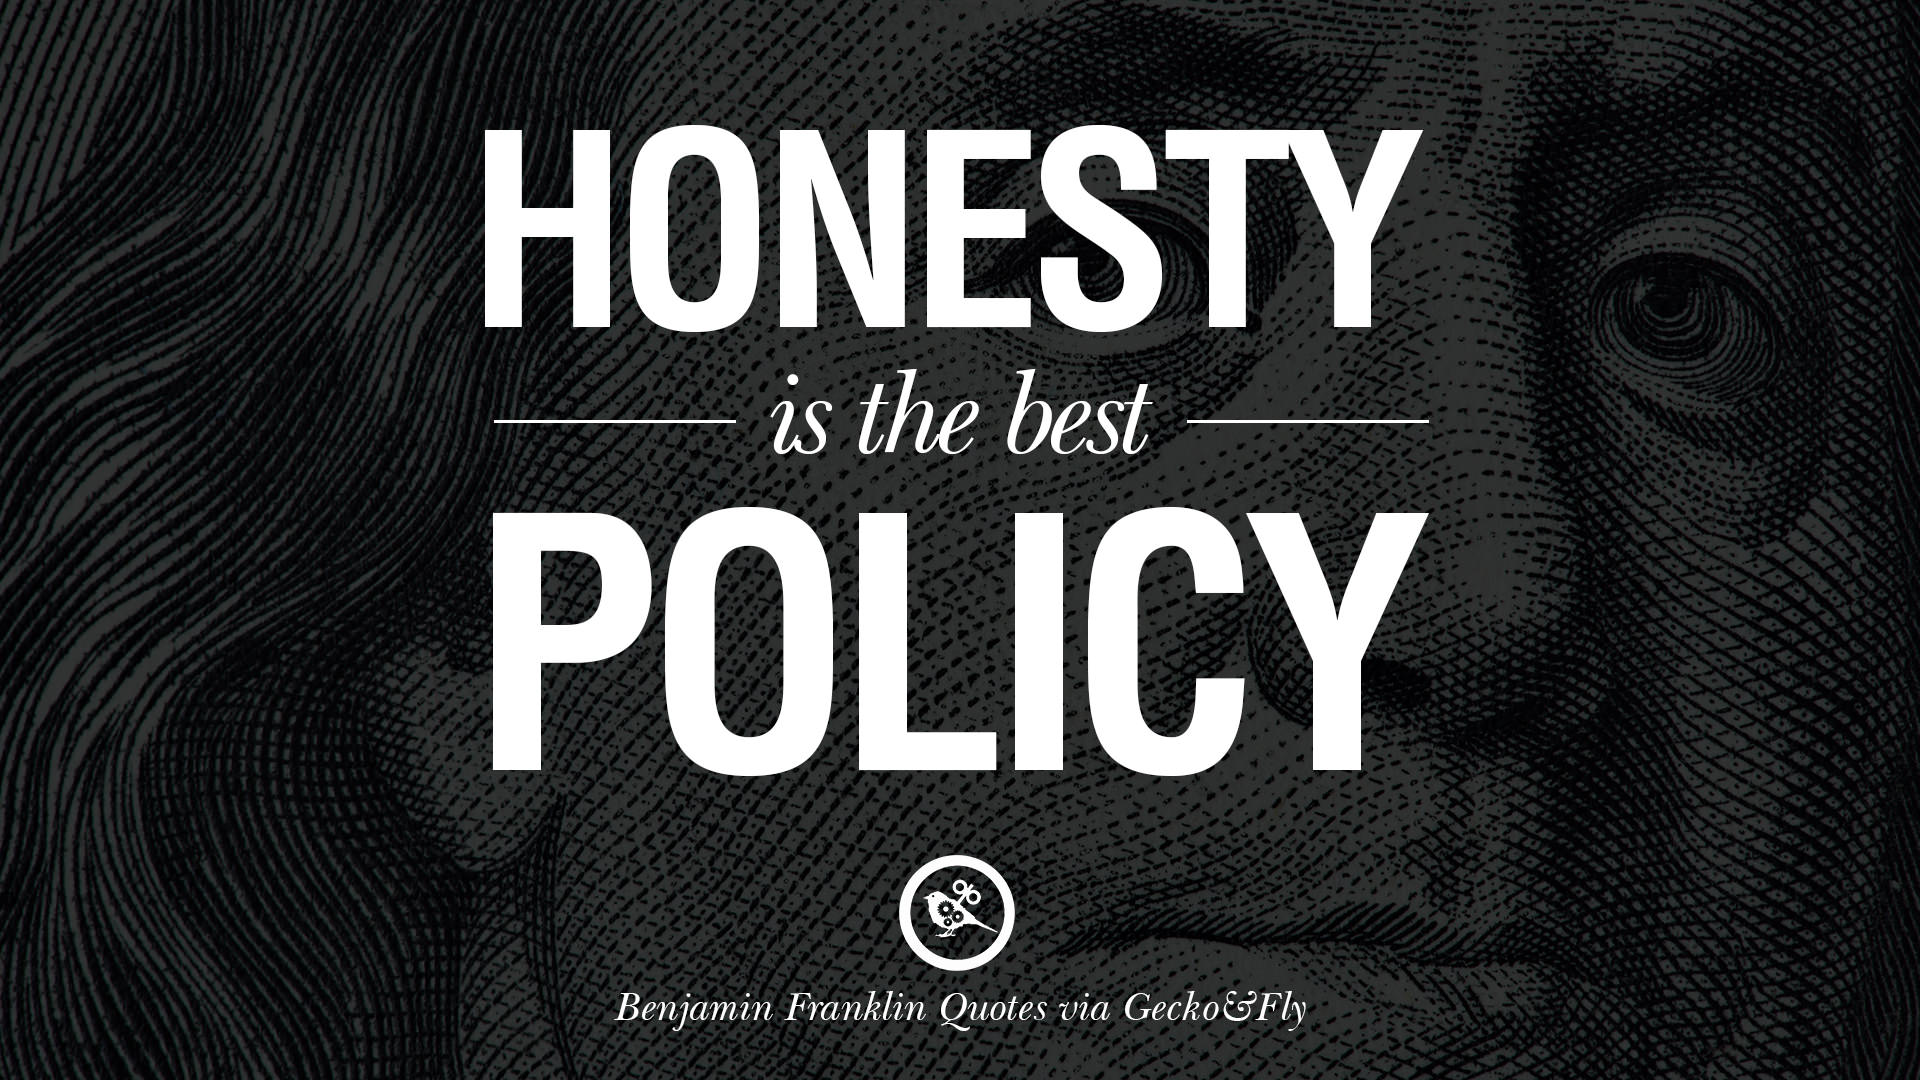 Honesty is the best policy. - Honesty Is The Best Policy Banner PNG